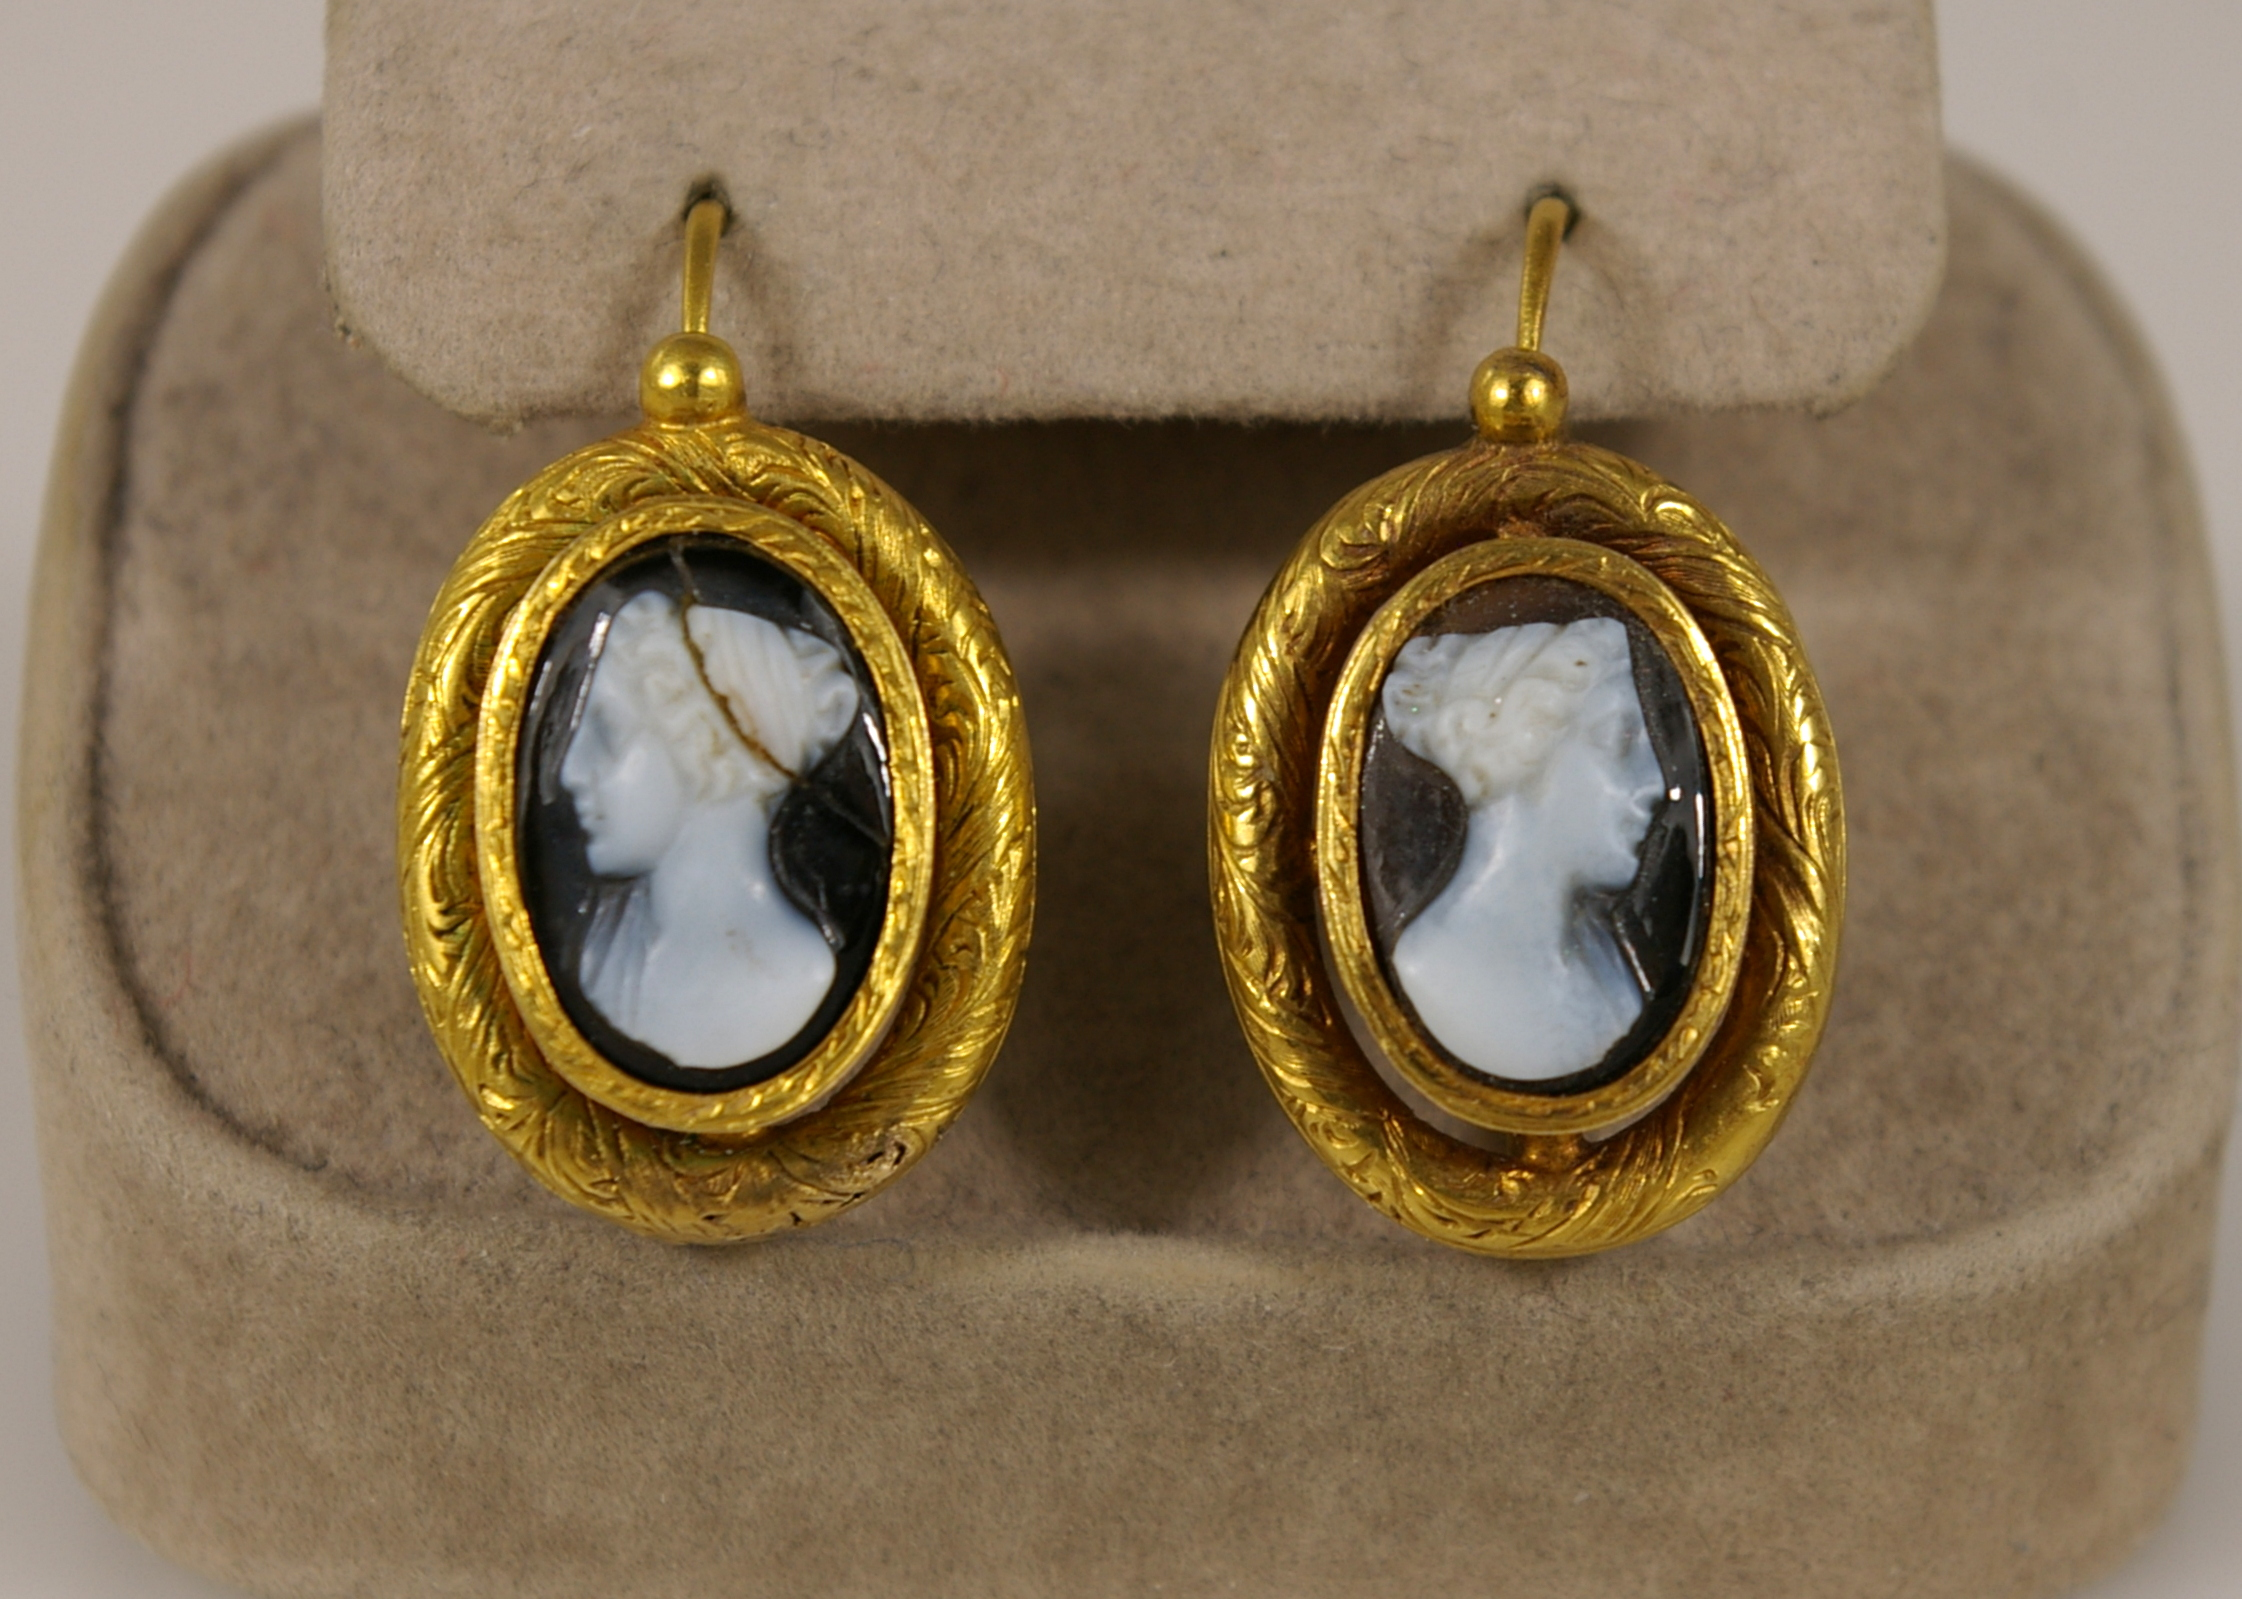 Cameo Stone with 18 Karat Yellow Gold mounting